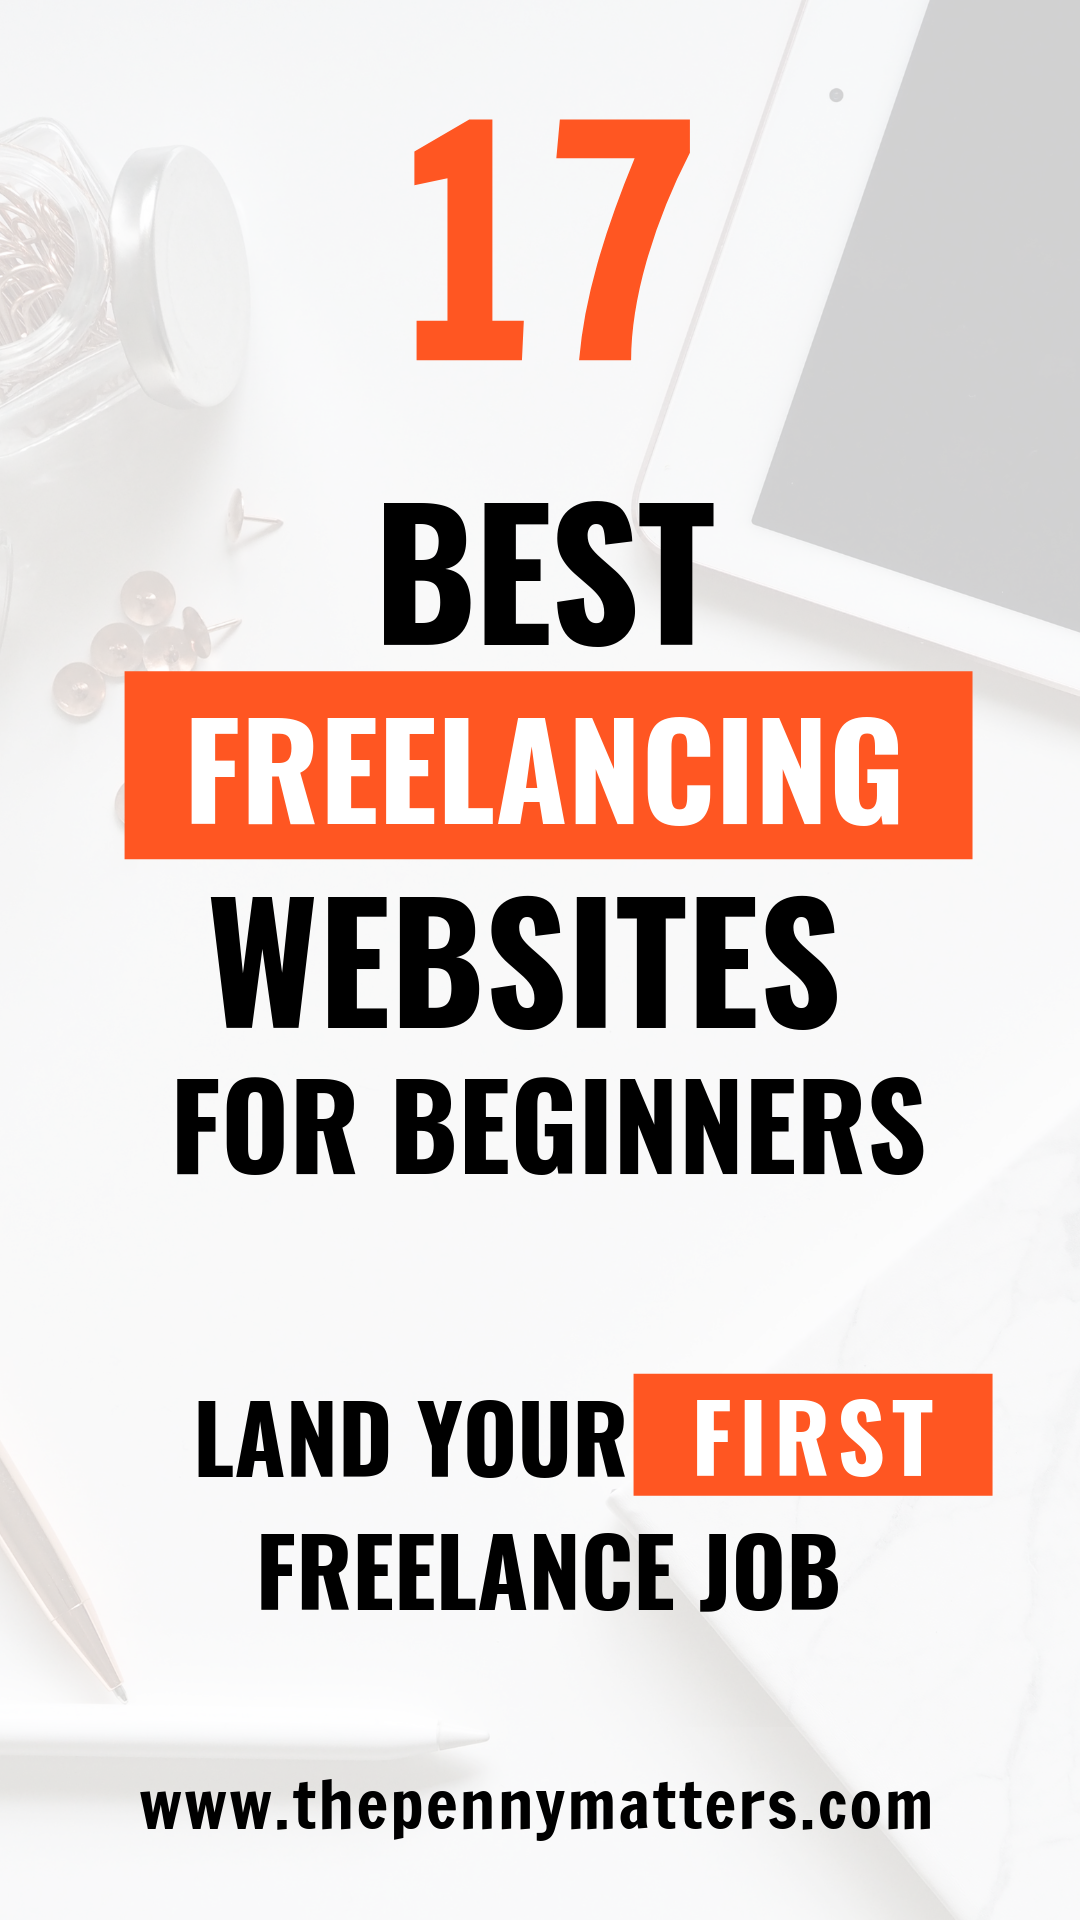 17 Best Freelance Websites For Beginners In 2019 New Popular Pins For Repins Online Job Search Online Work From Home Online Jobs